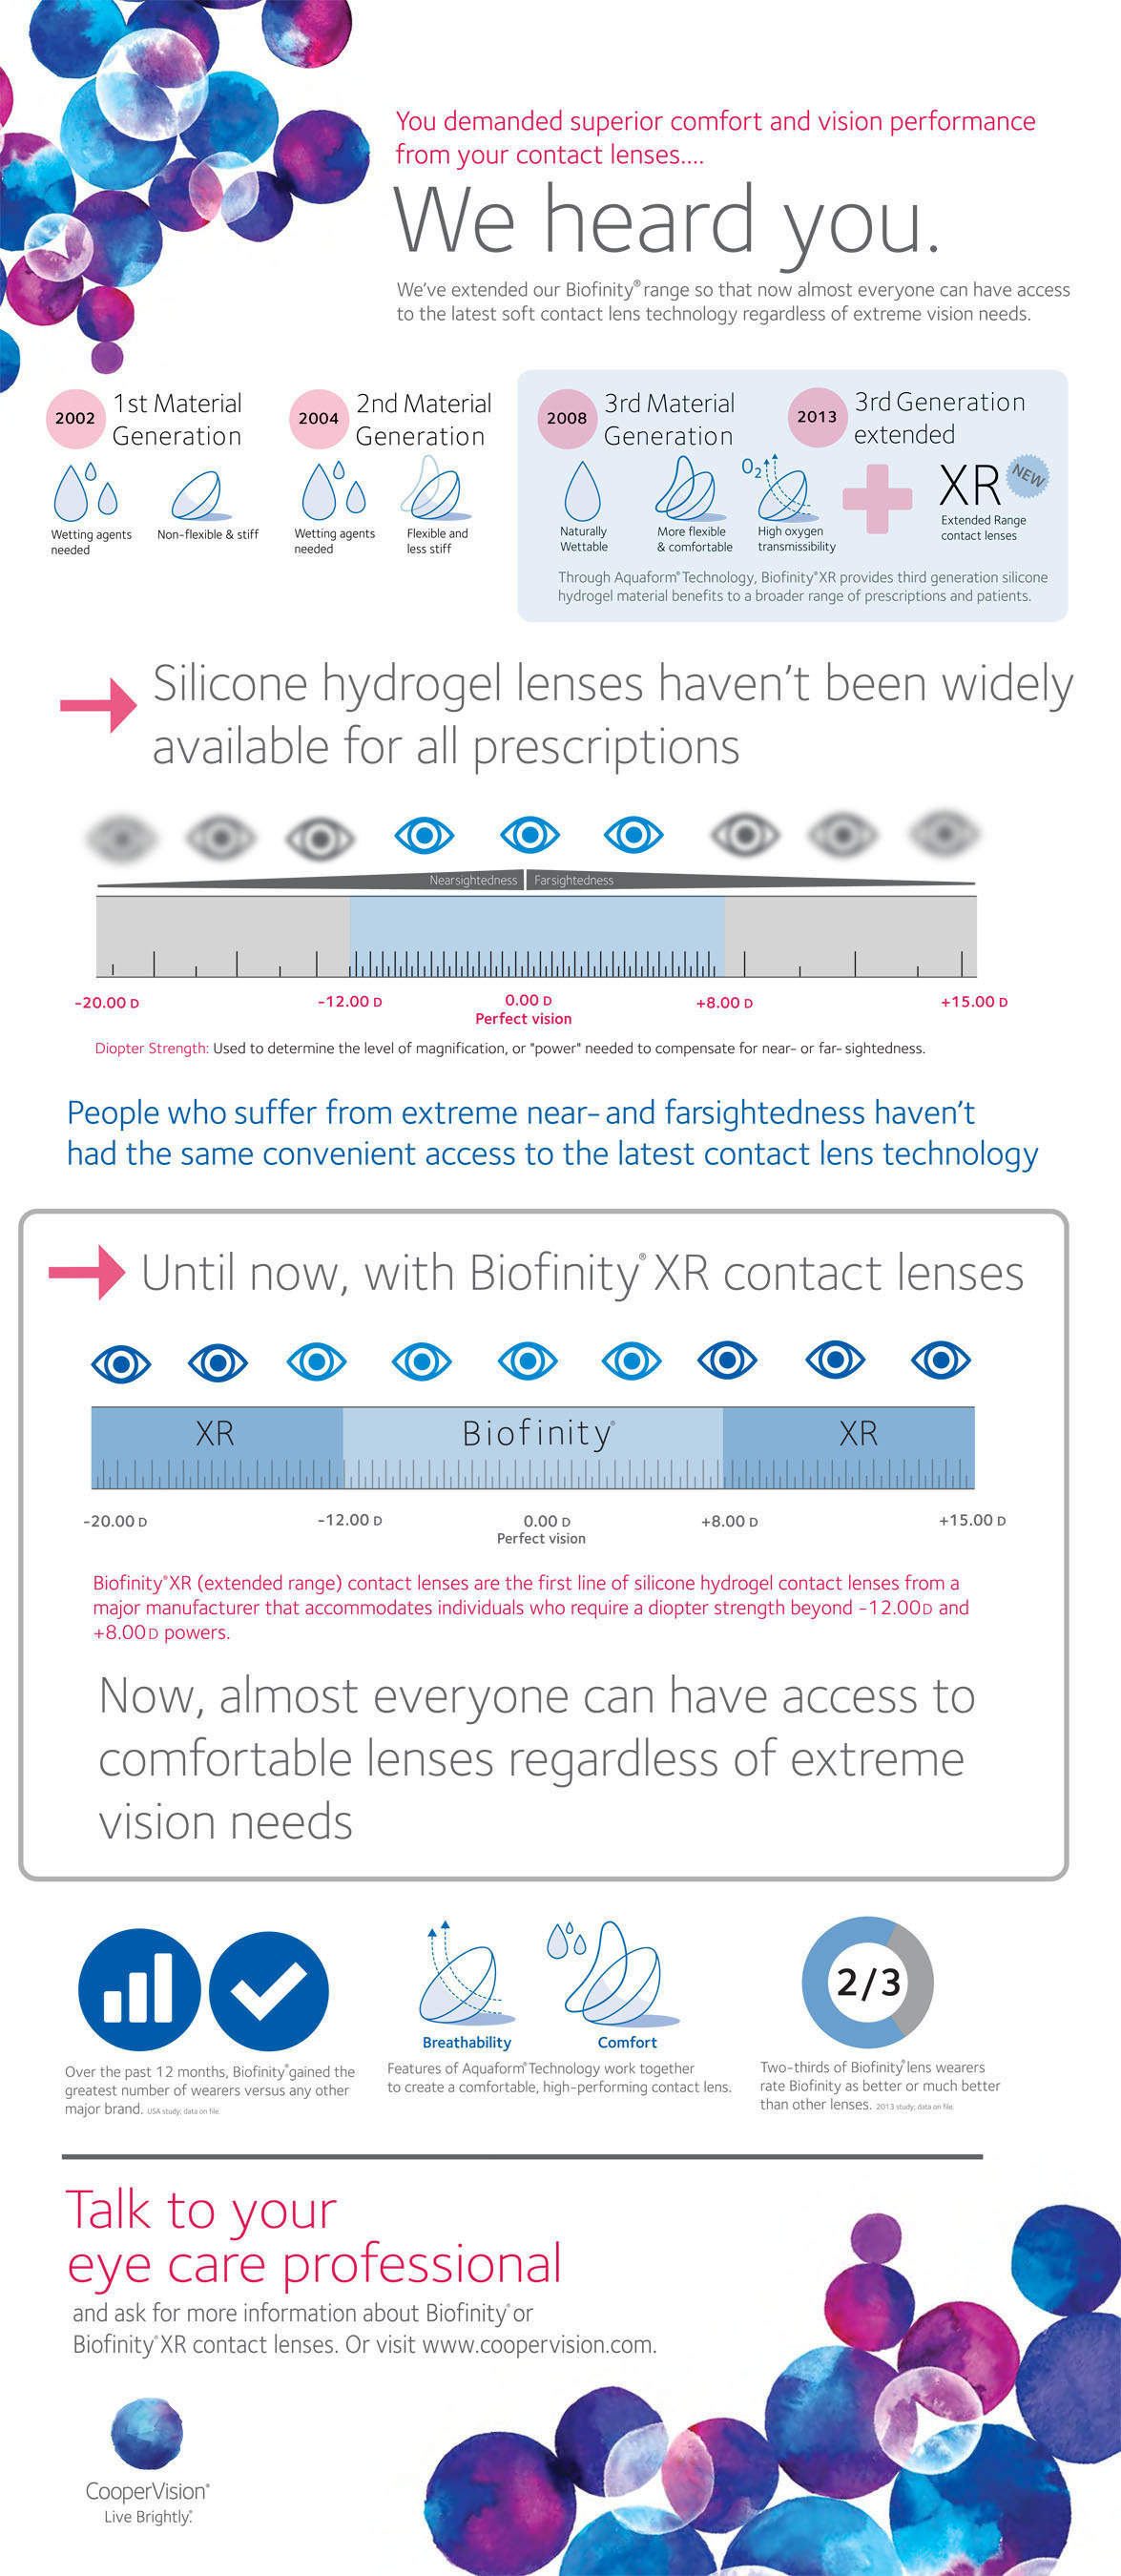 CooperVision, Inc. today announced the launch of its Biofinity(R) XR contact lens brand, an extension of its ...